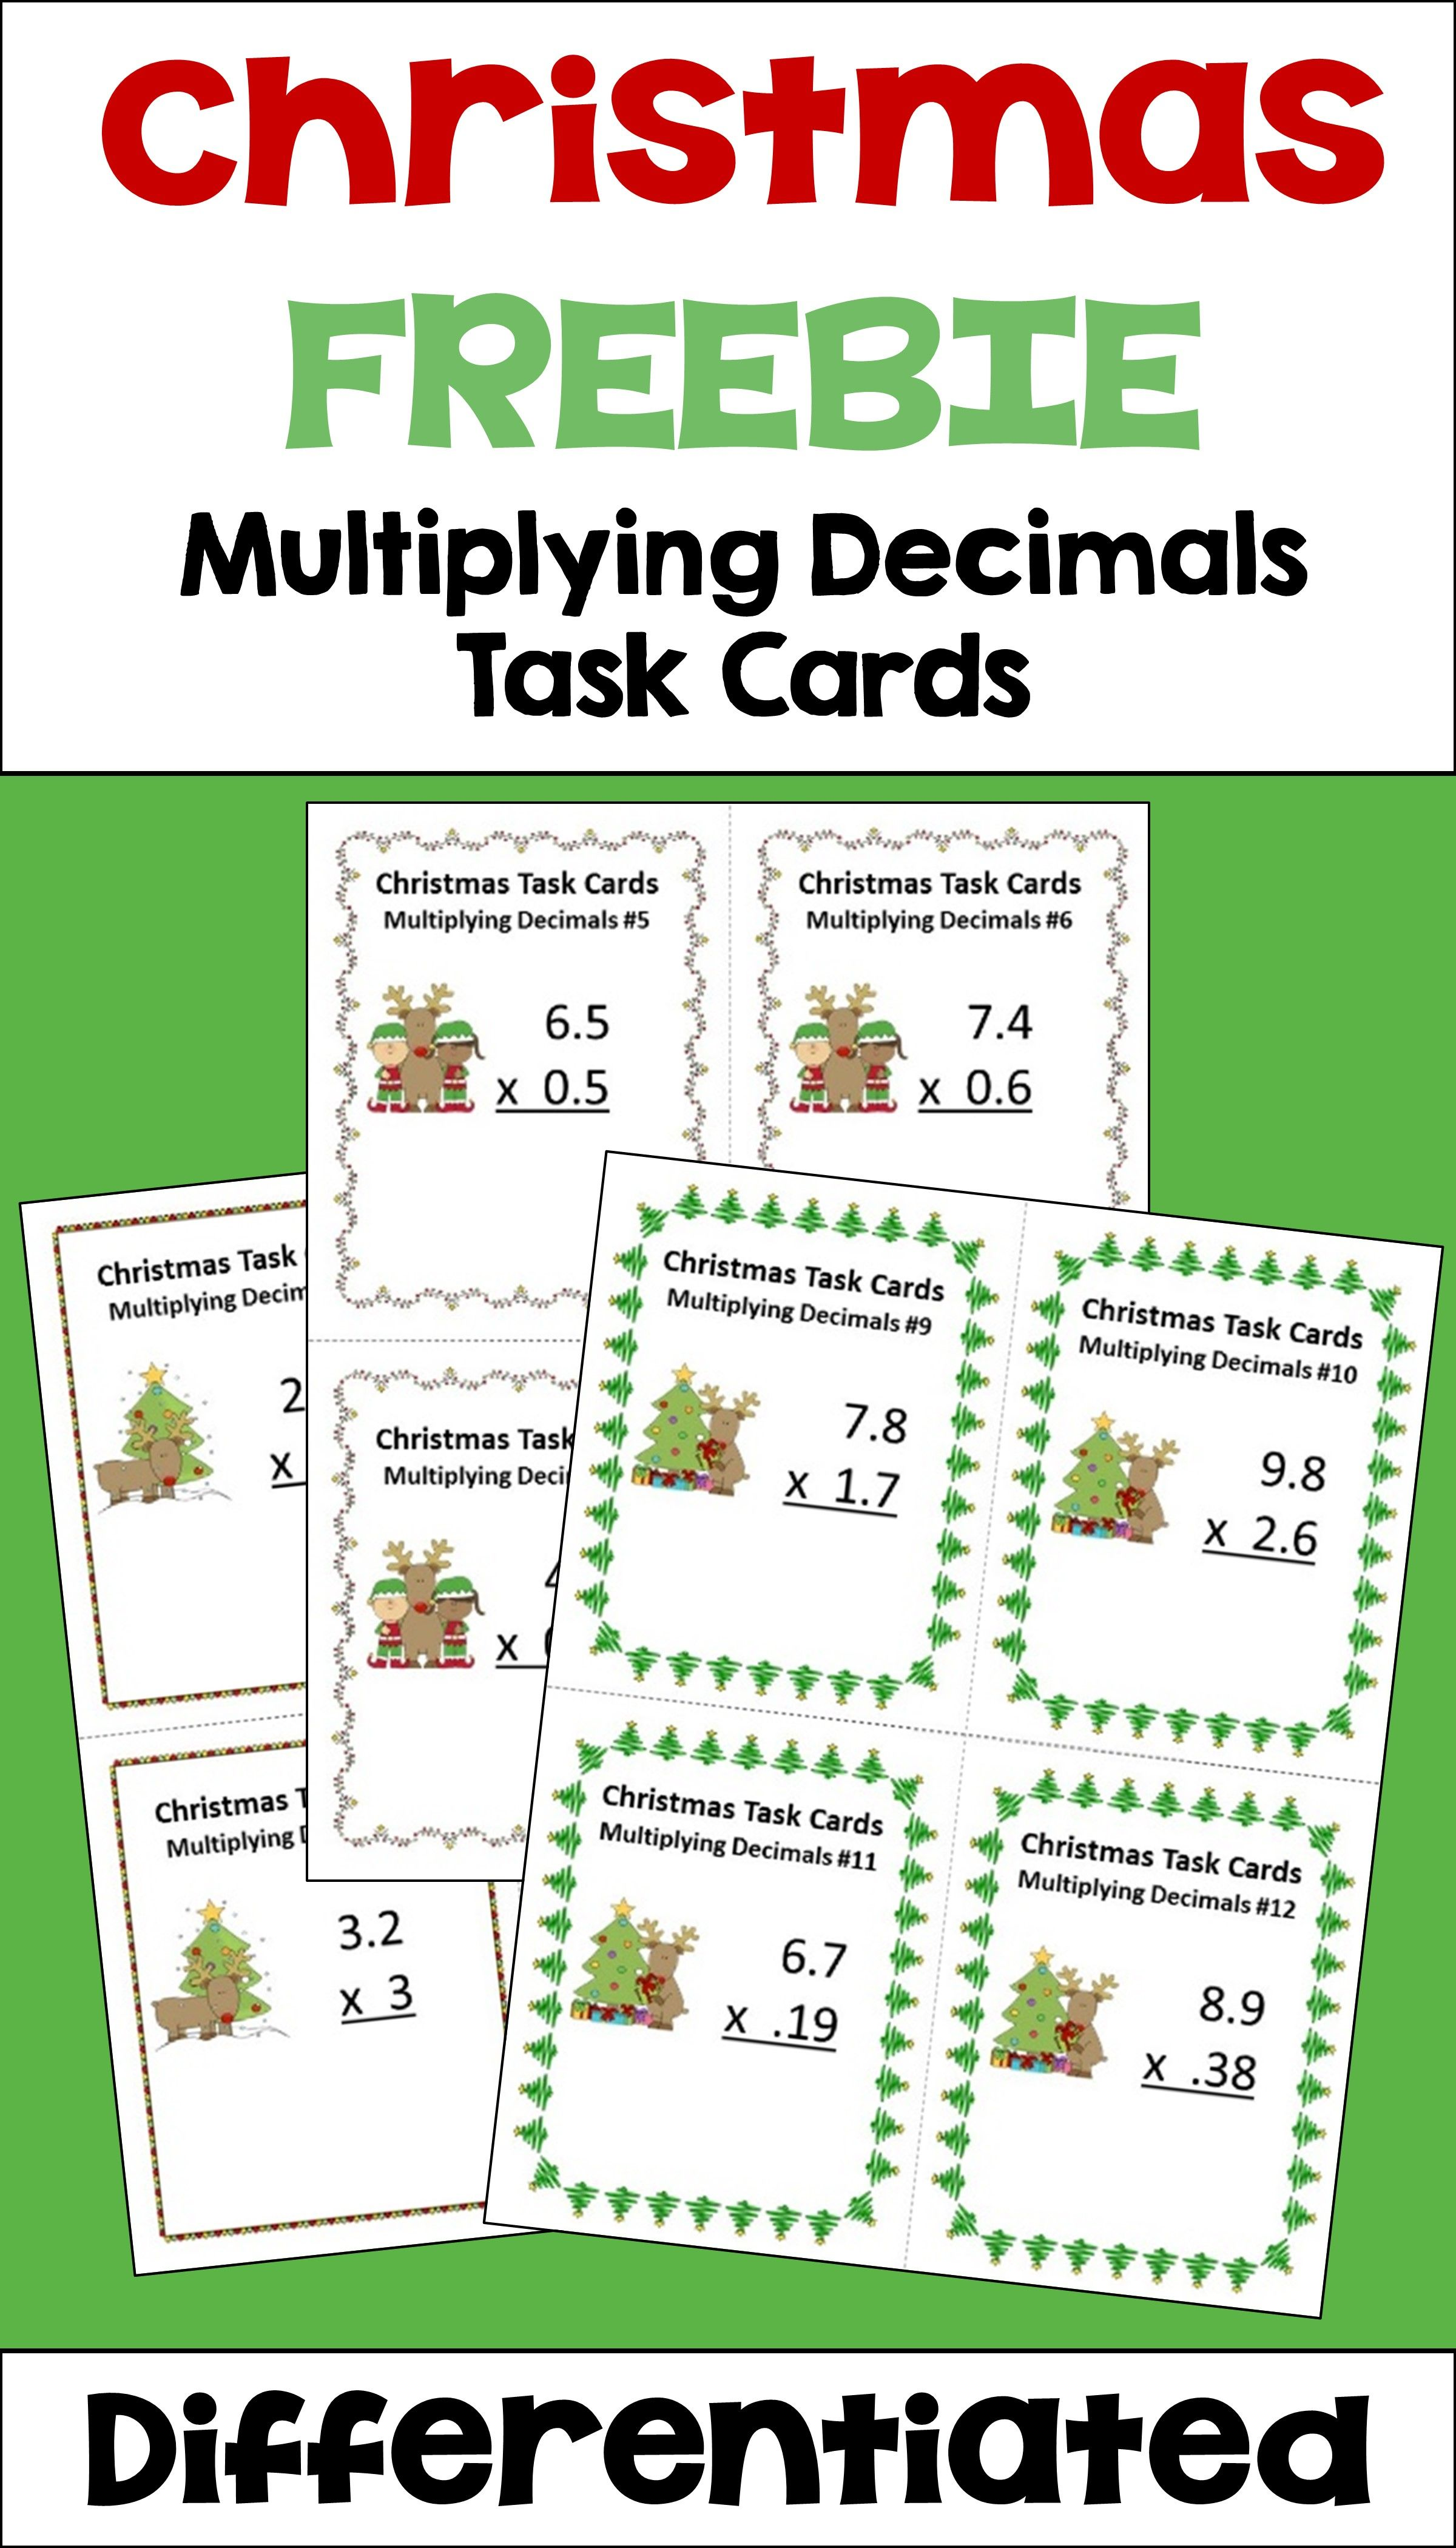 Christmas Math Is Fun For Kids With These Free Multiplying